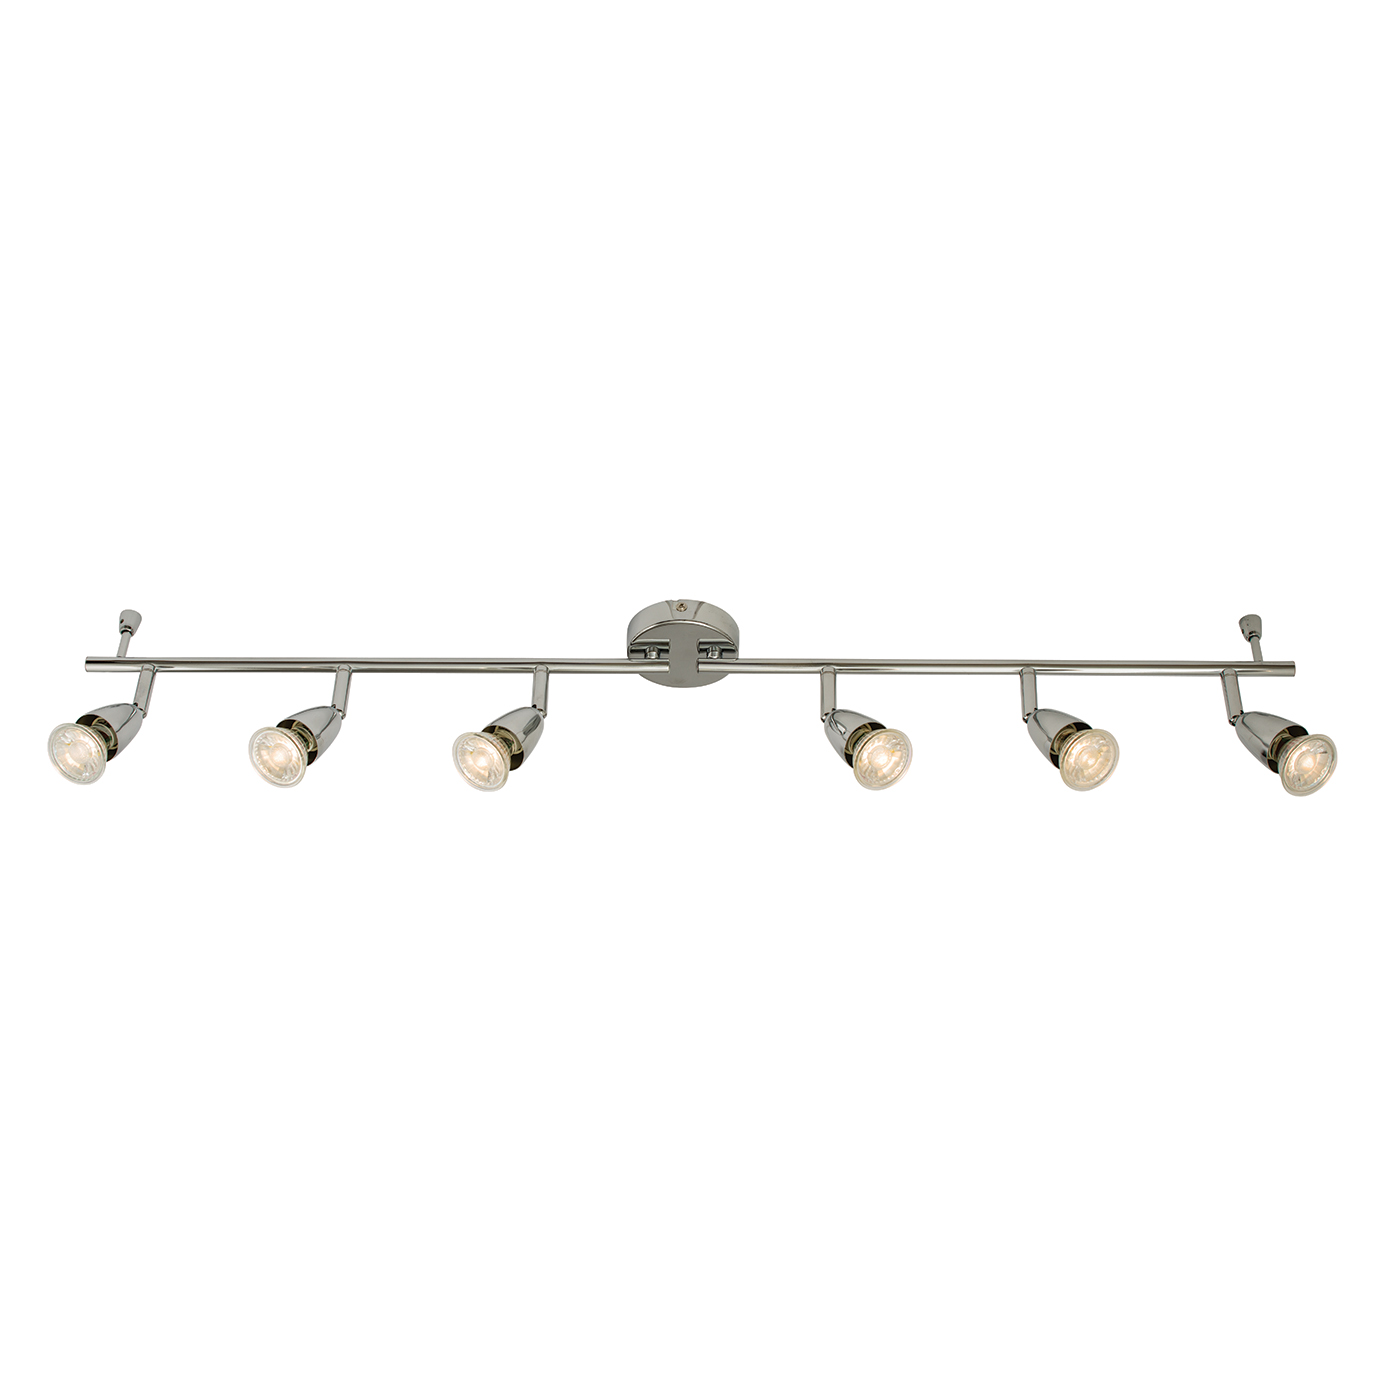 Endon Amalfi ceiling spotlight bar 6x 50W Chrome effect plate Thumbnail 1